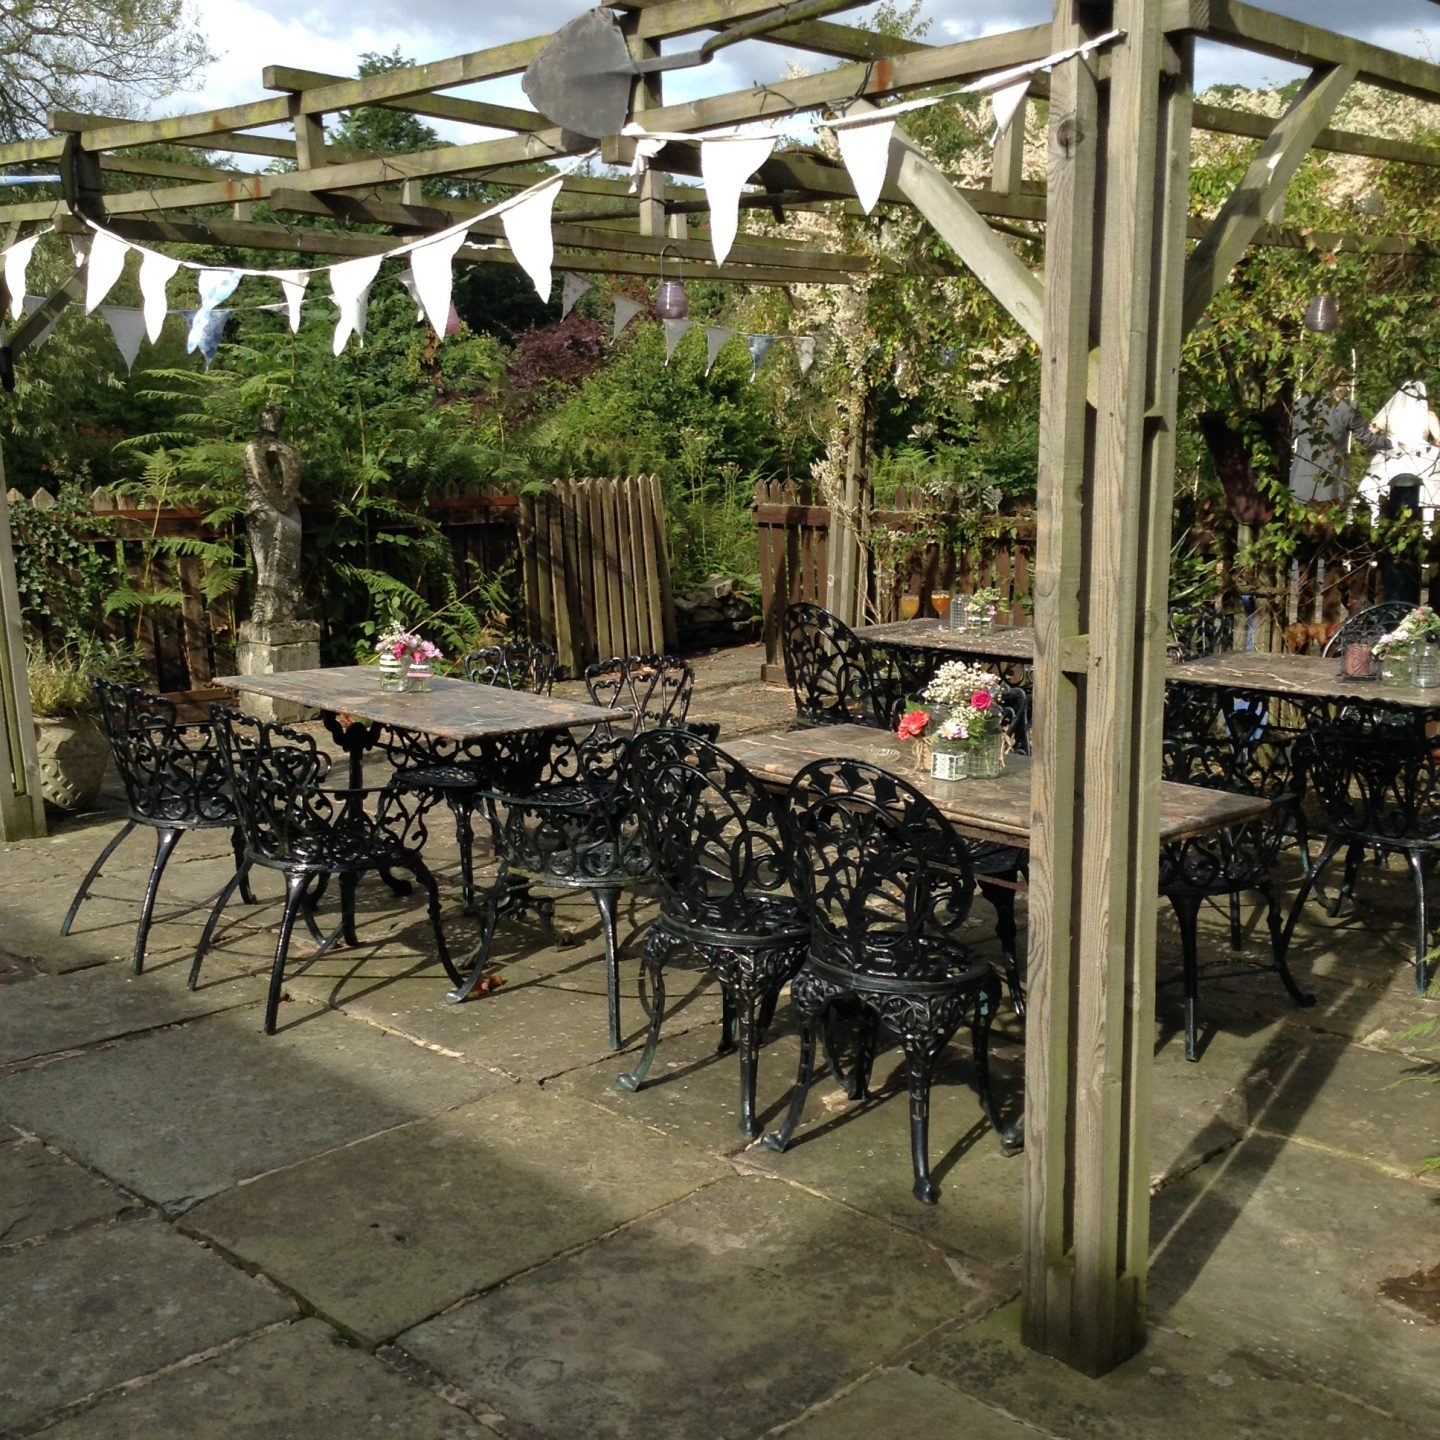 Tea Gardens at Heskin Hall Lancashirehire